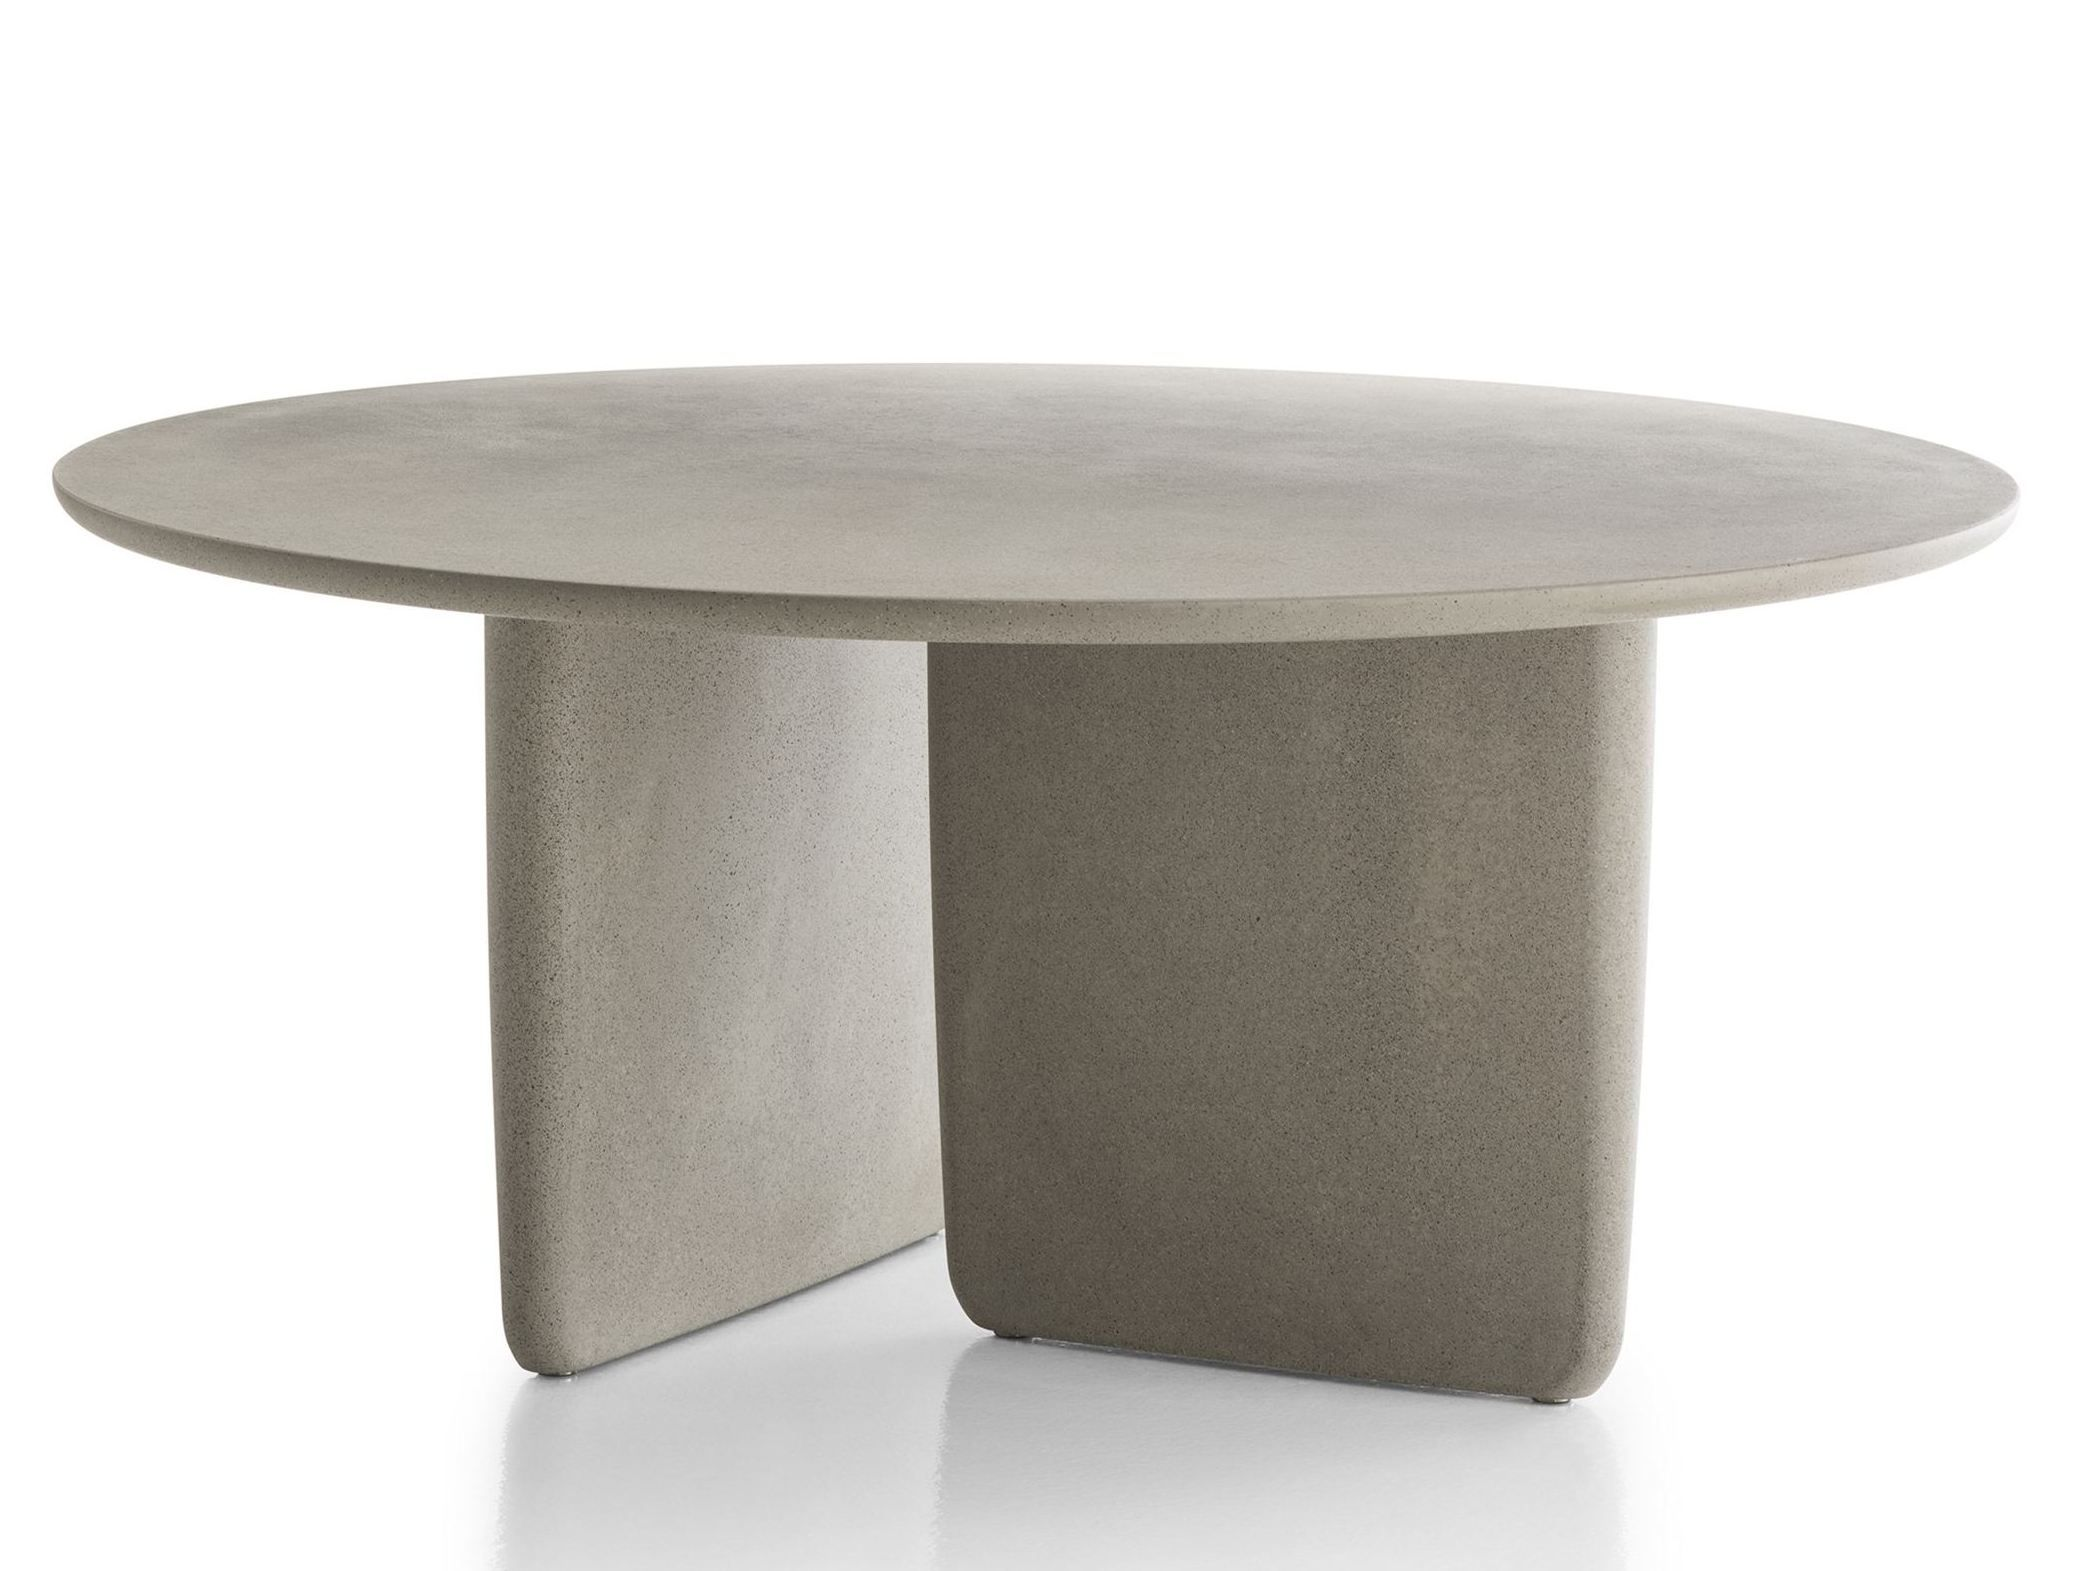 Cabrera Concrete Round Dining Table Modern Outdoor Table Round